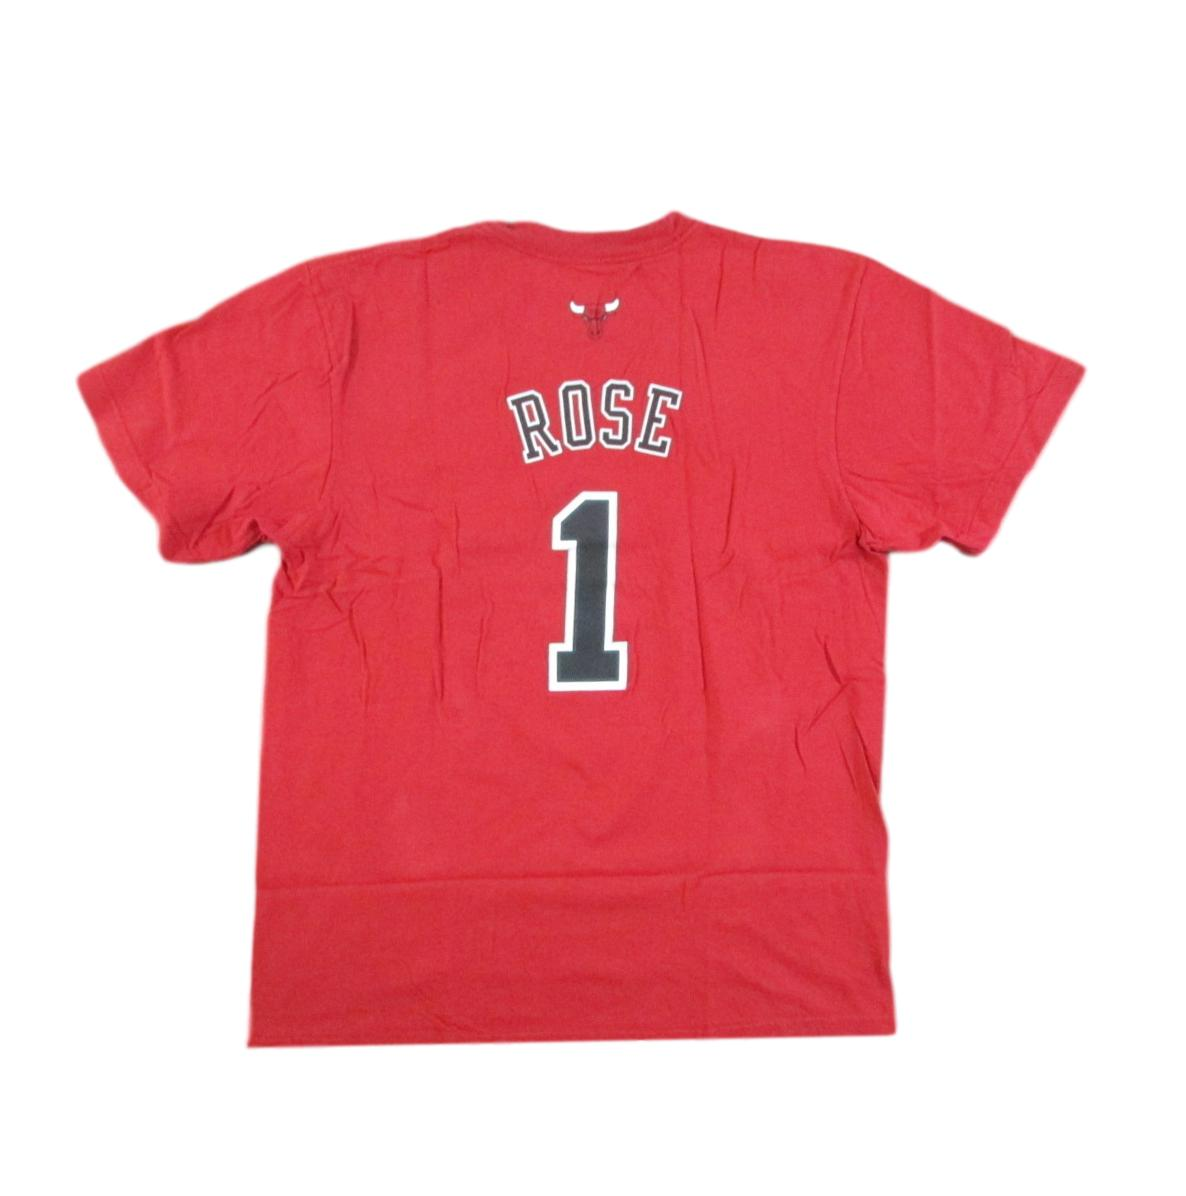 Derrick Rose Chicago Bulls Players T-Shirt Adidas Sz XL